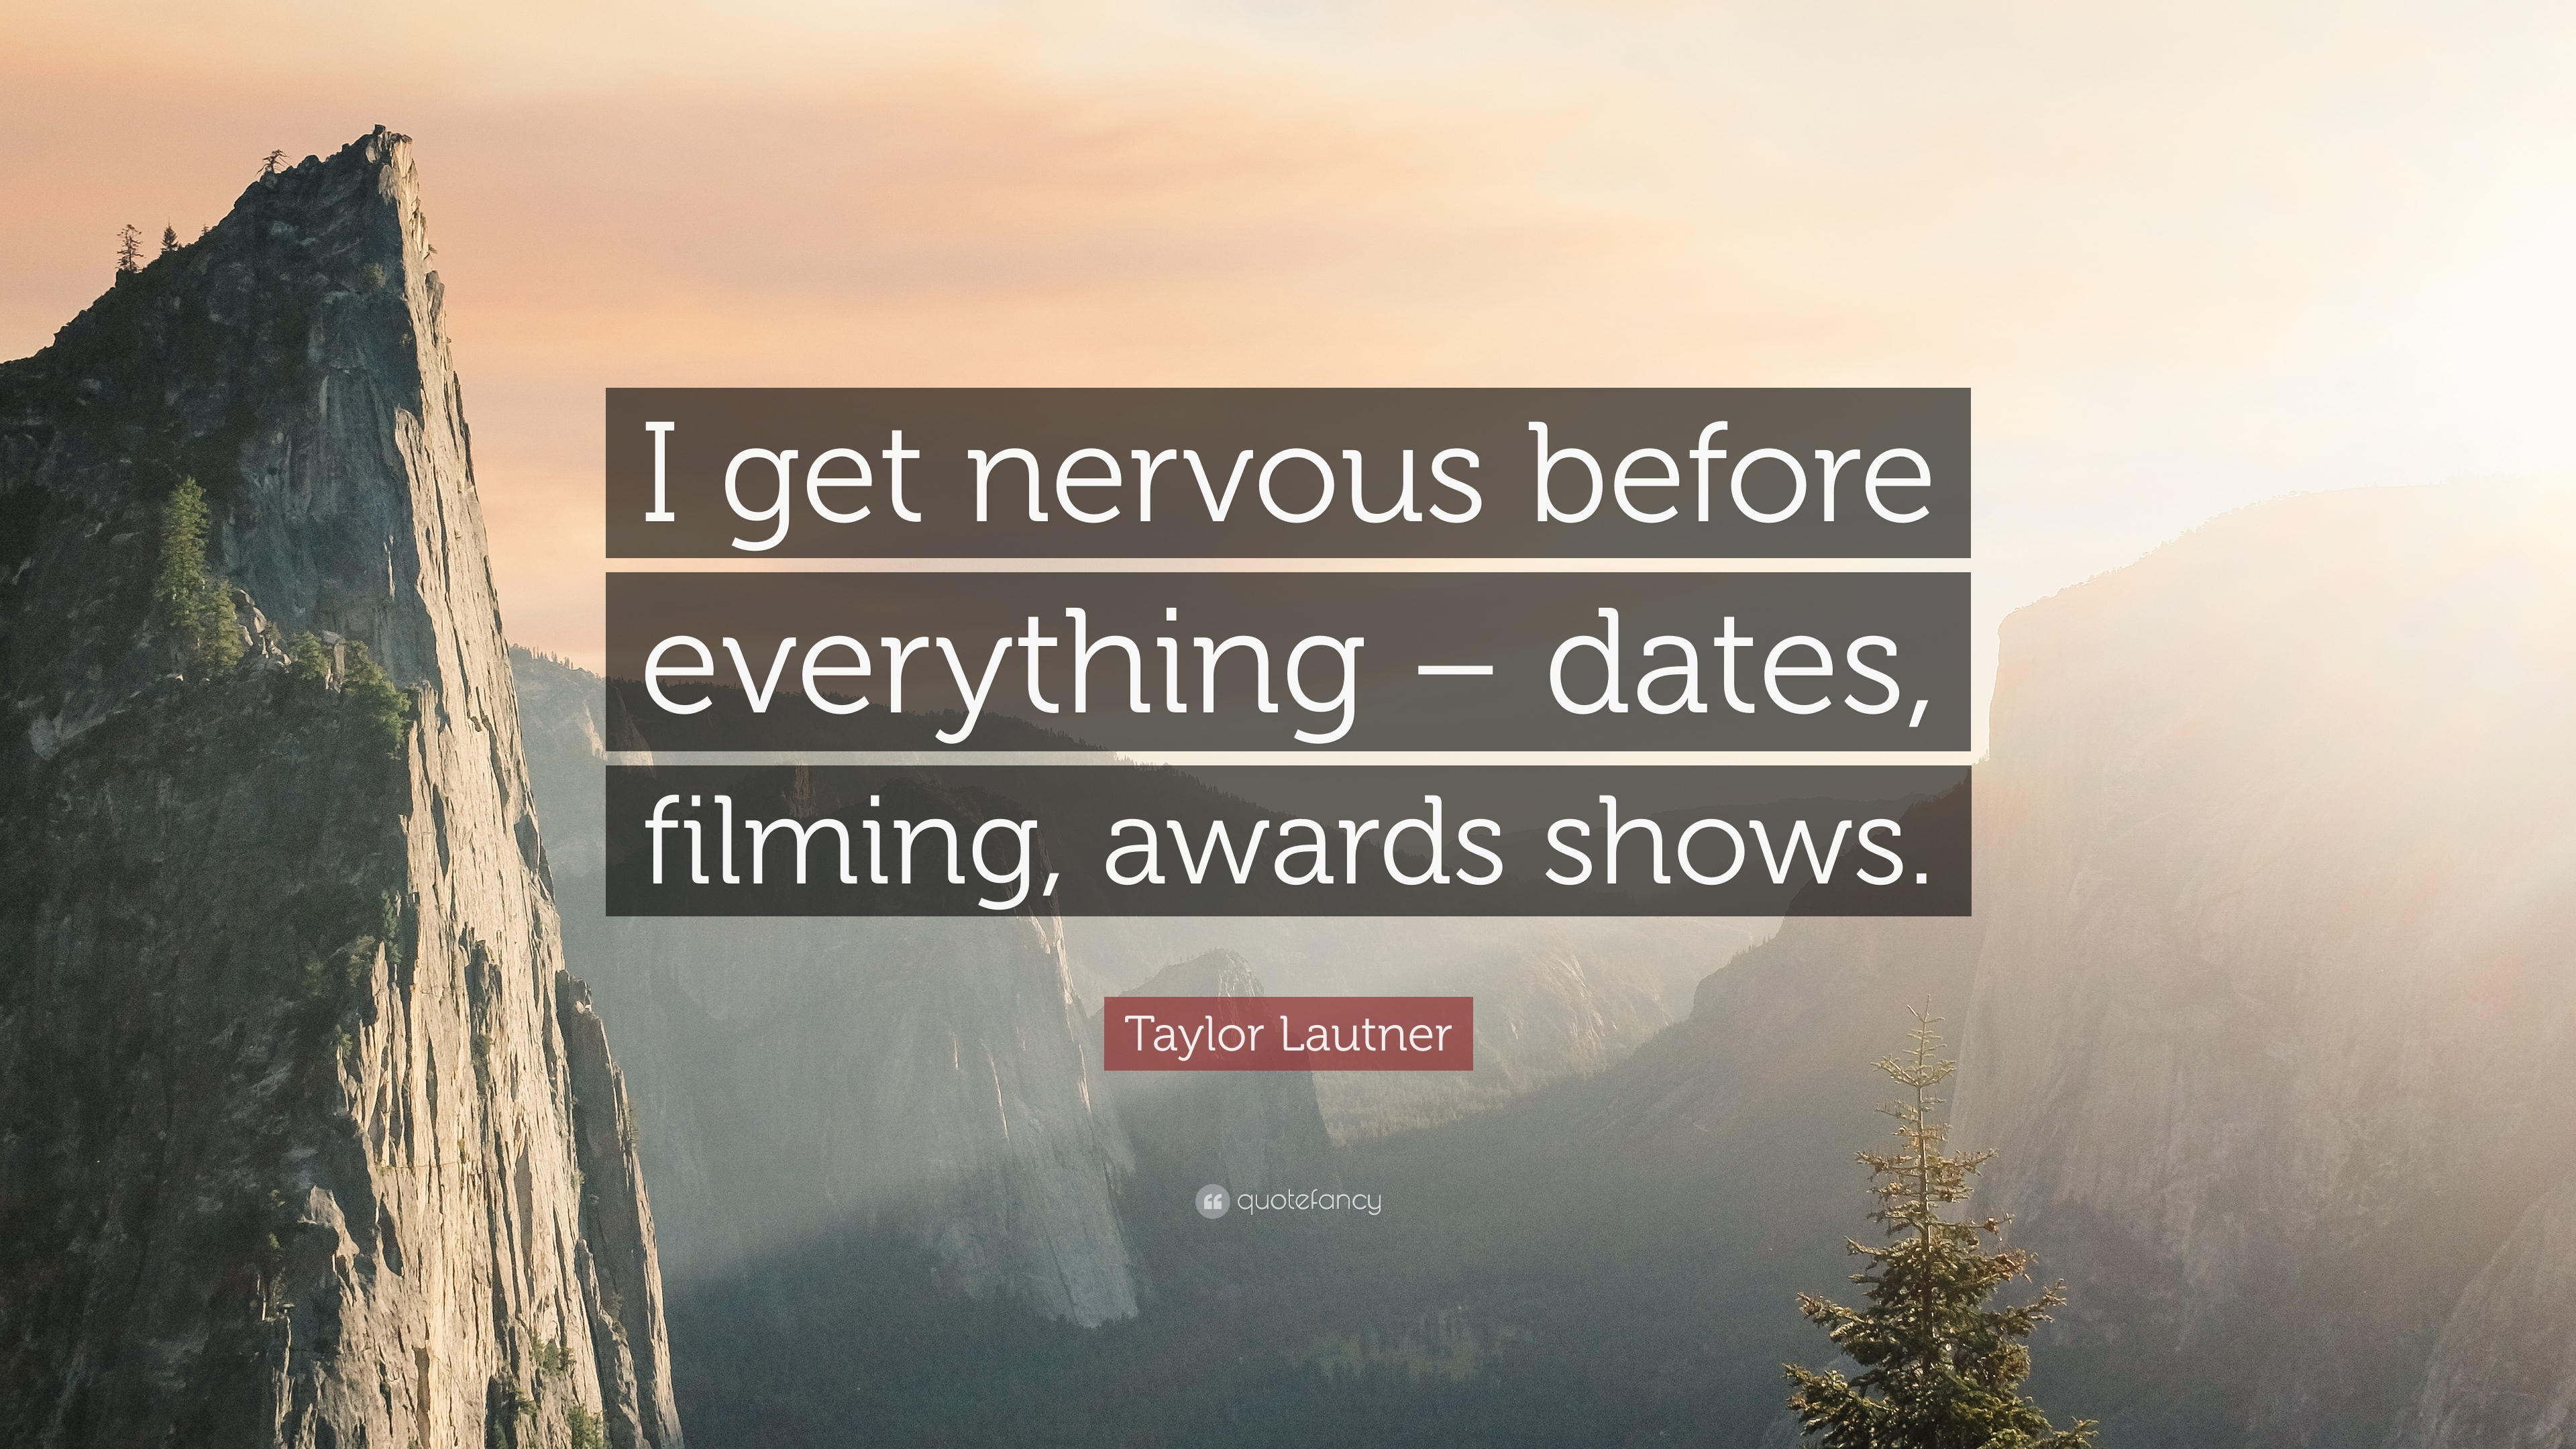 getting nervous before dates